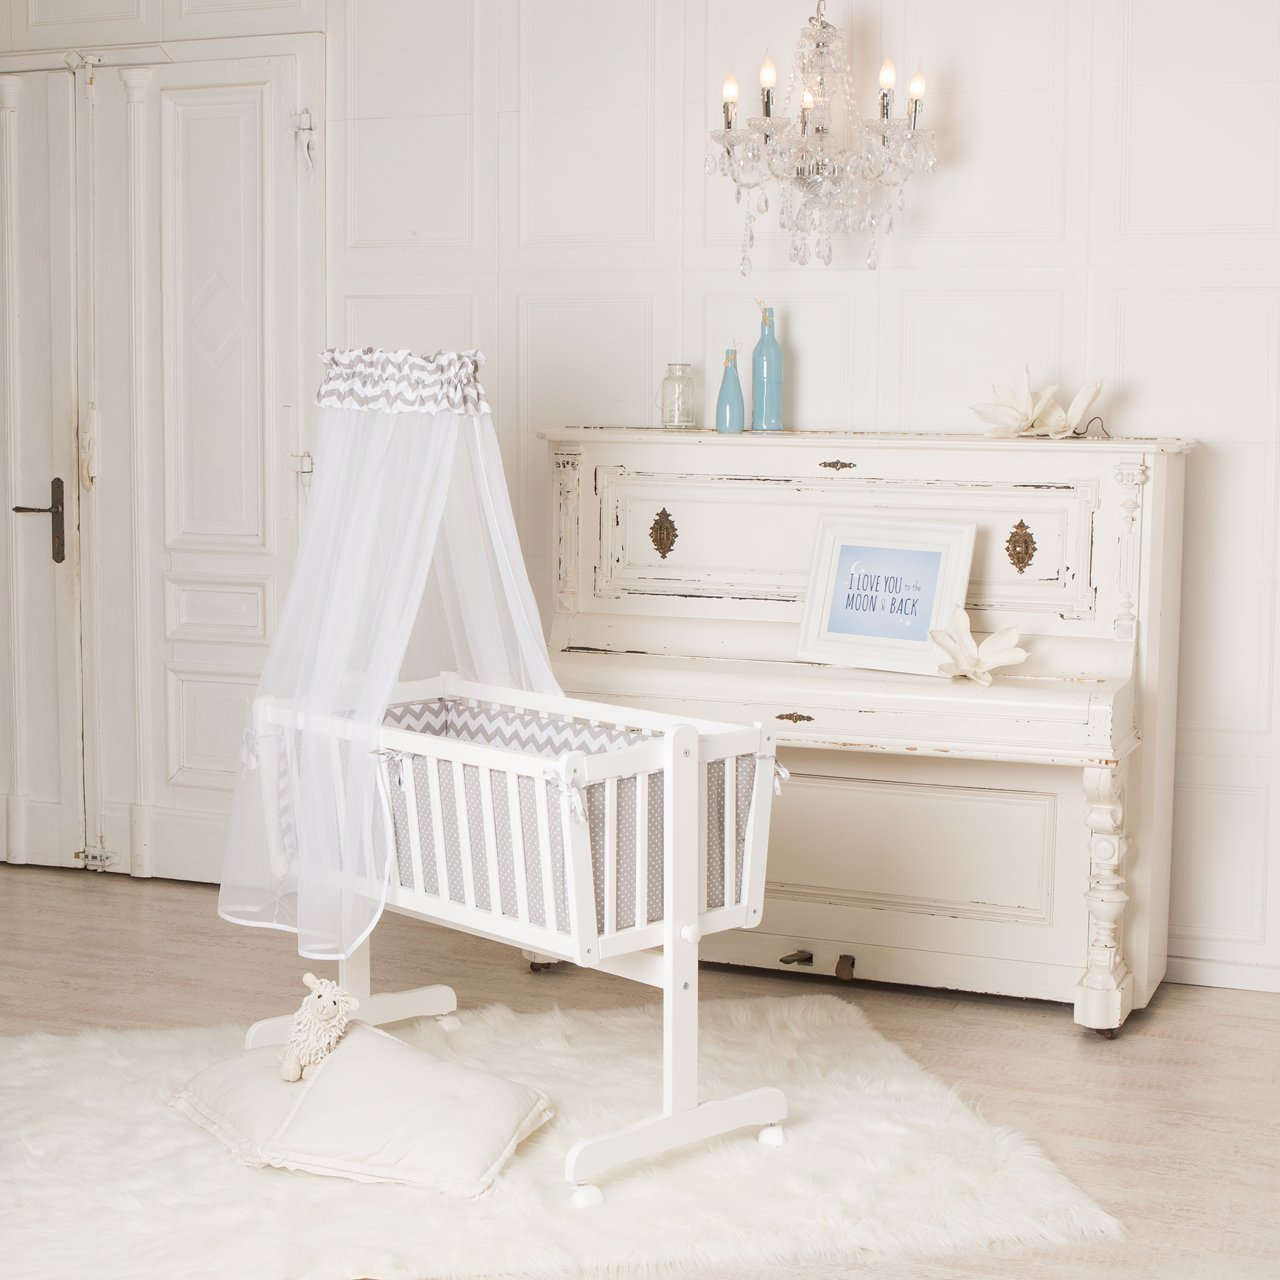 Beautiful Baby Wiege Rezyklierten Materialien Gallery Globexusa . Awesome  ...